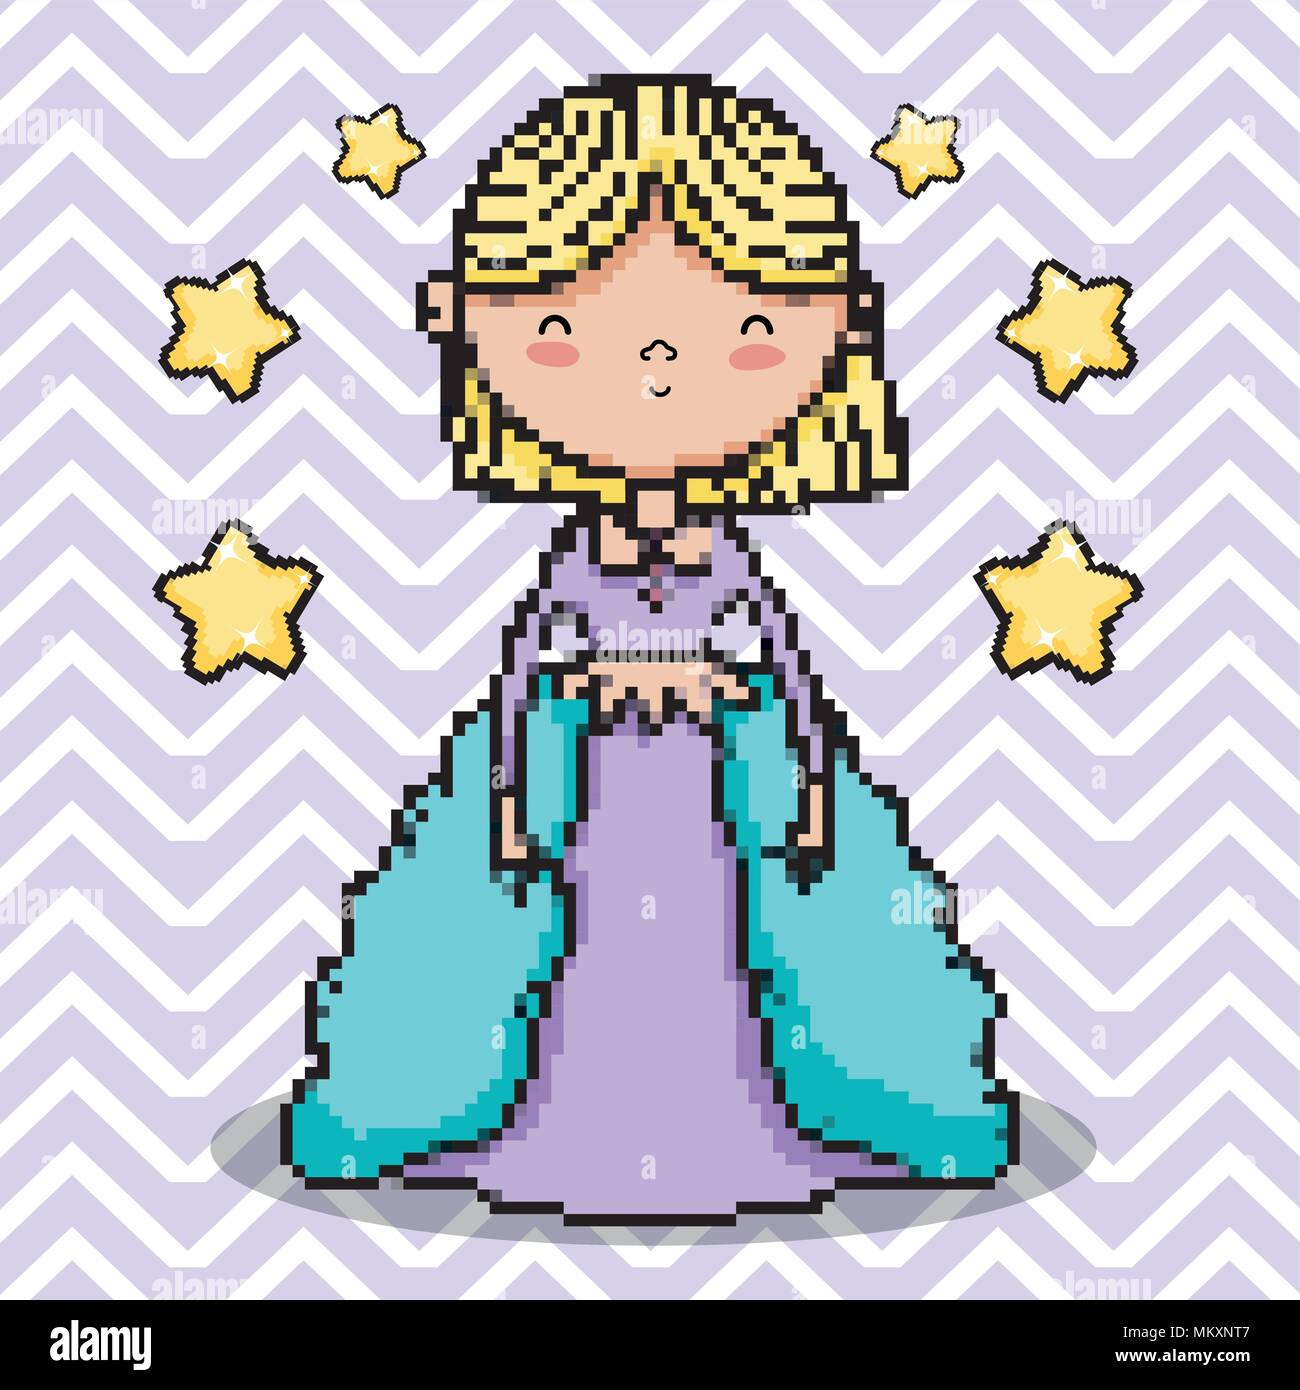 Cute Princess Pixel Art Stock Vector Art Illustration